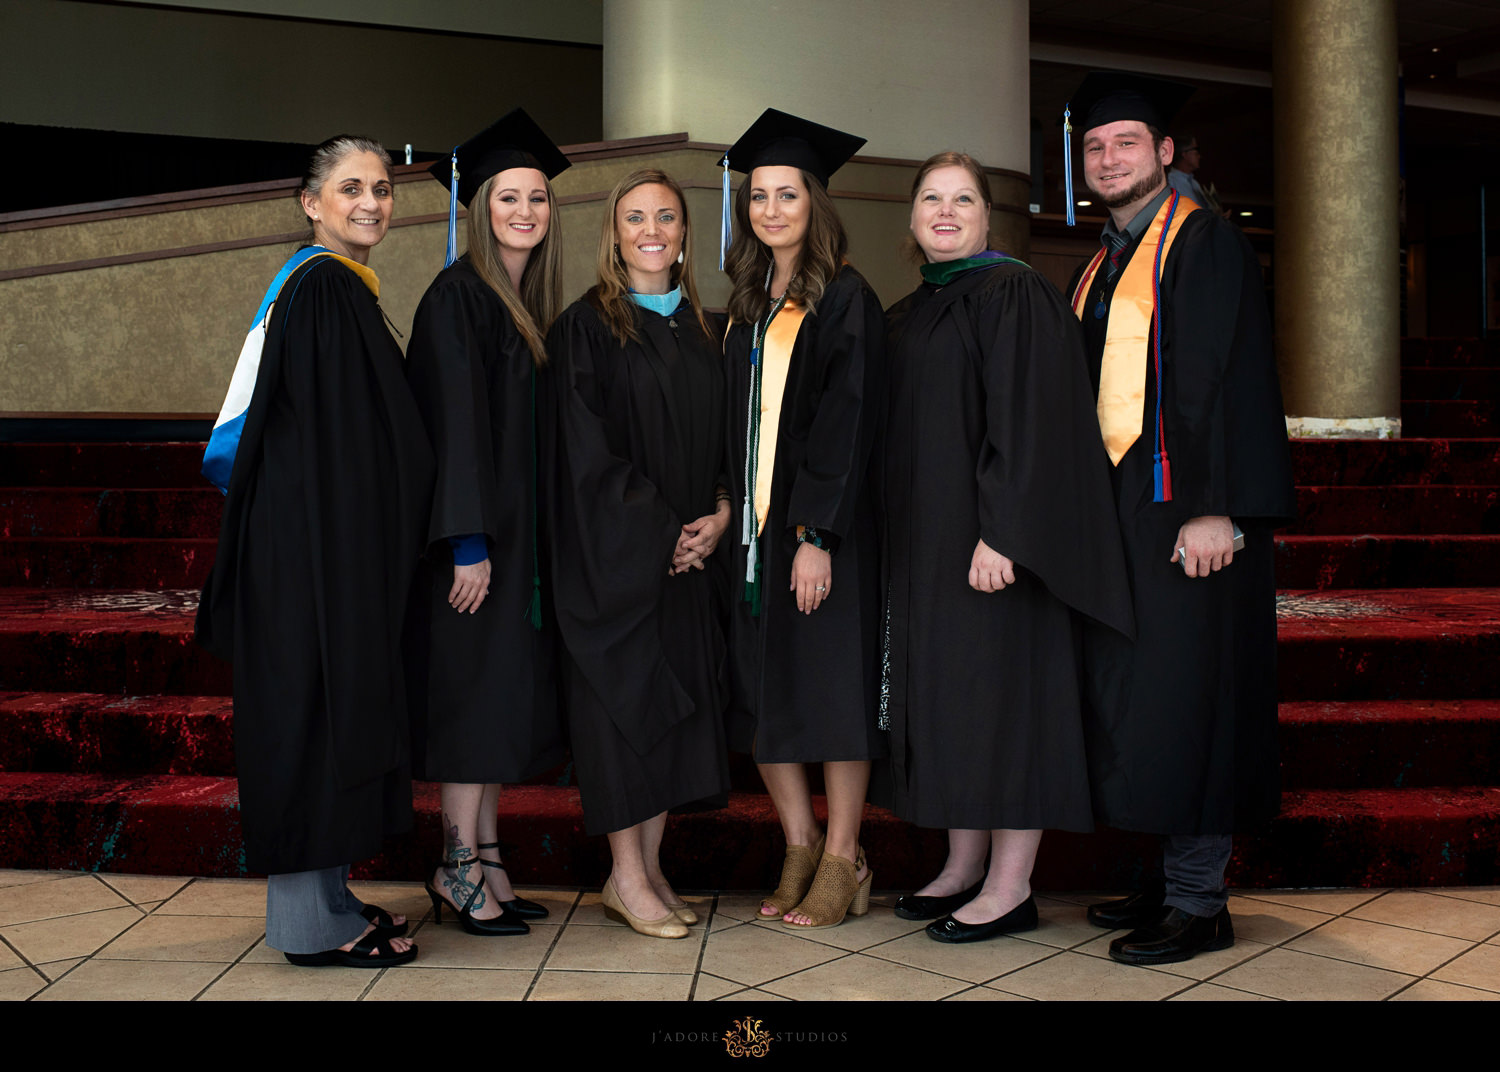 Student cohort group photo - corporate photography